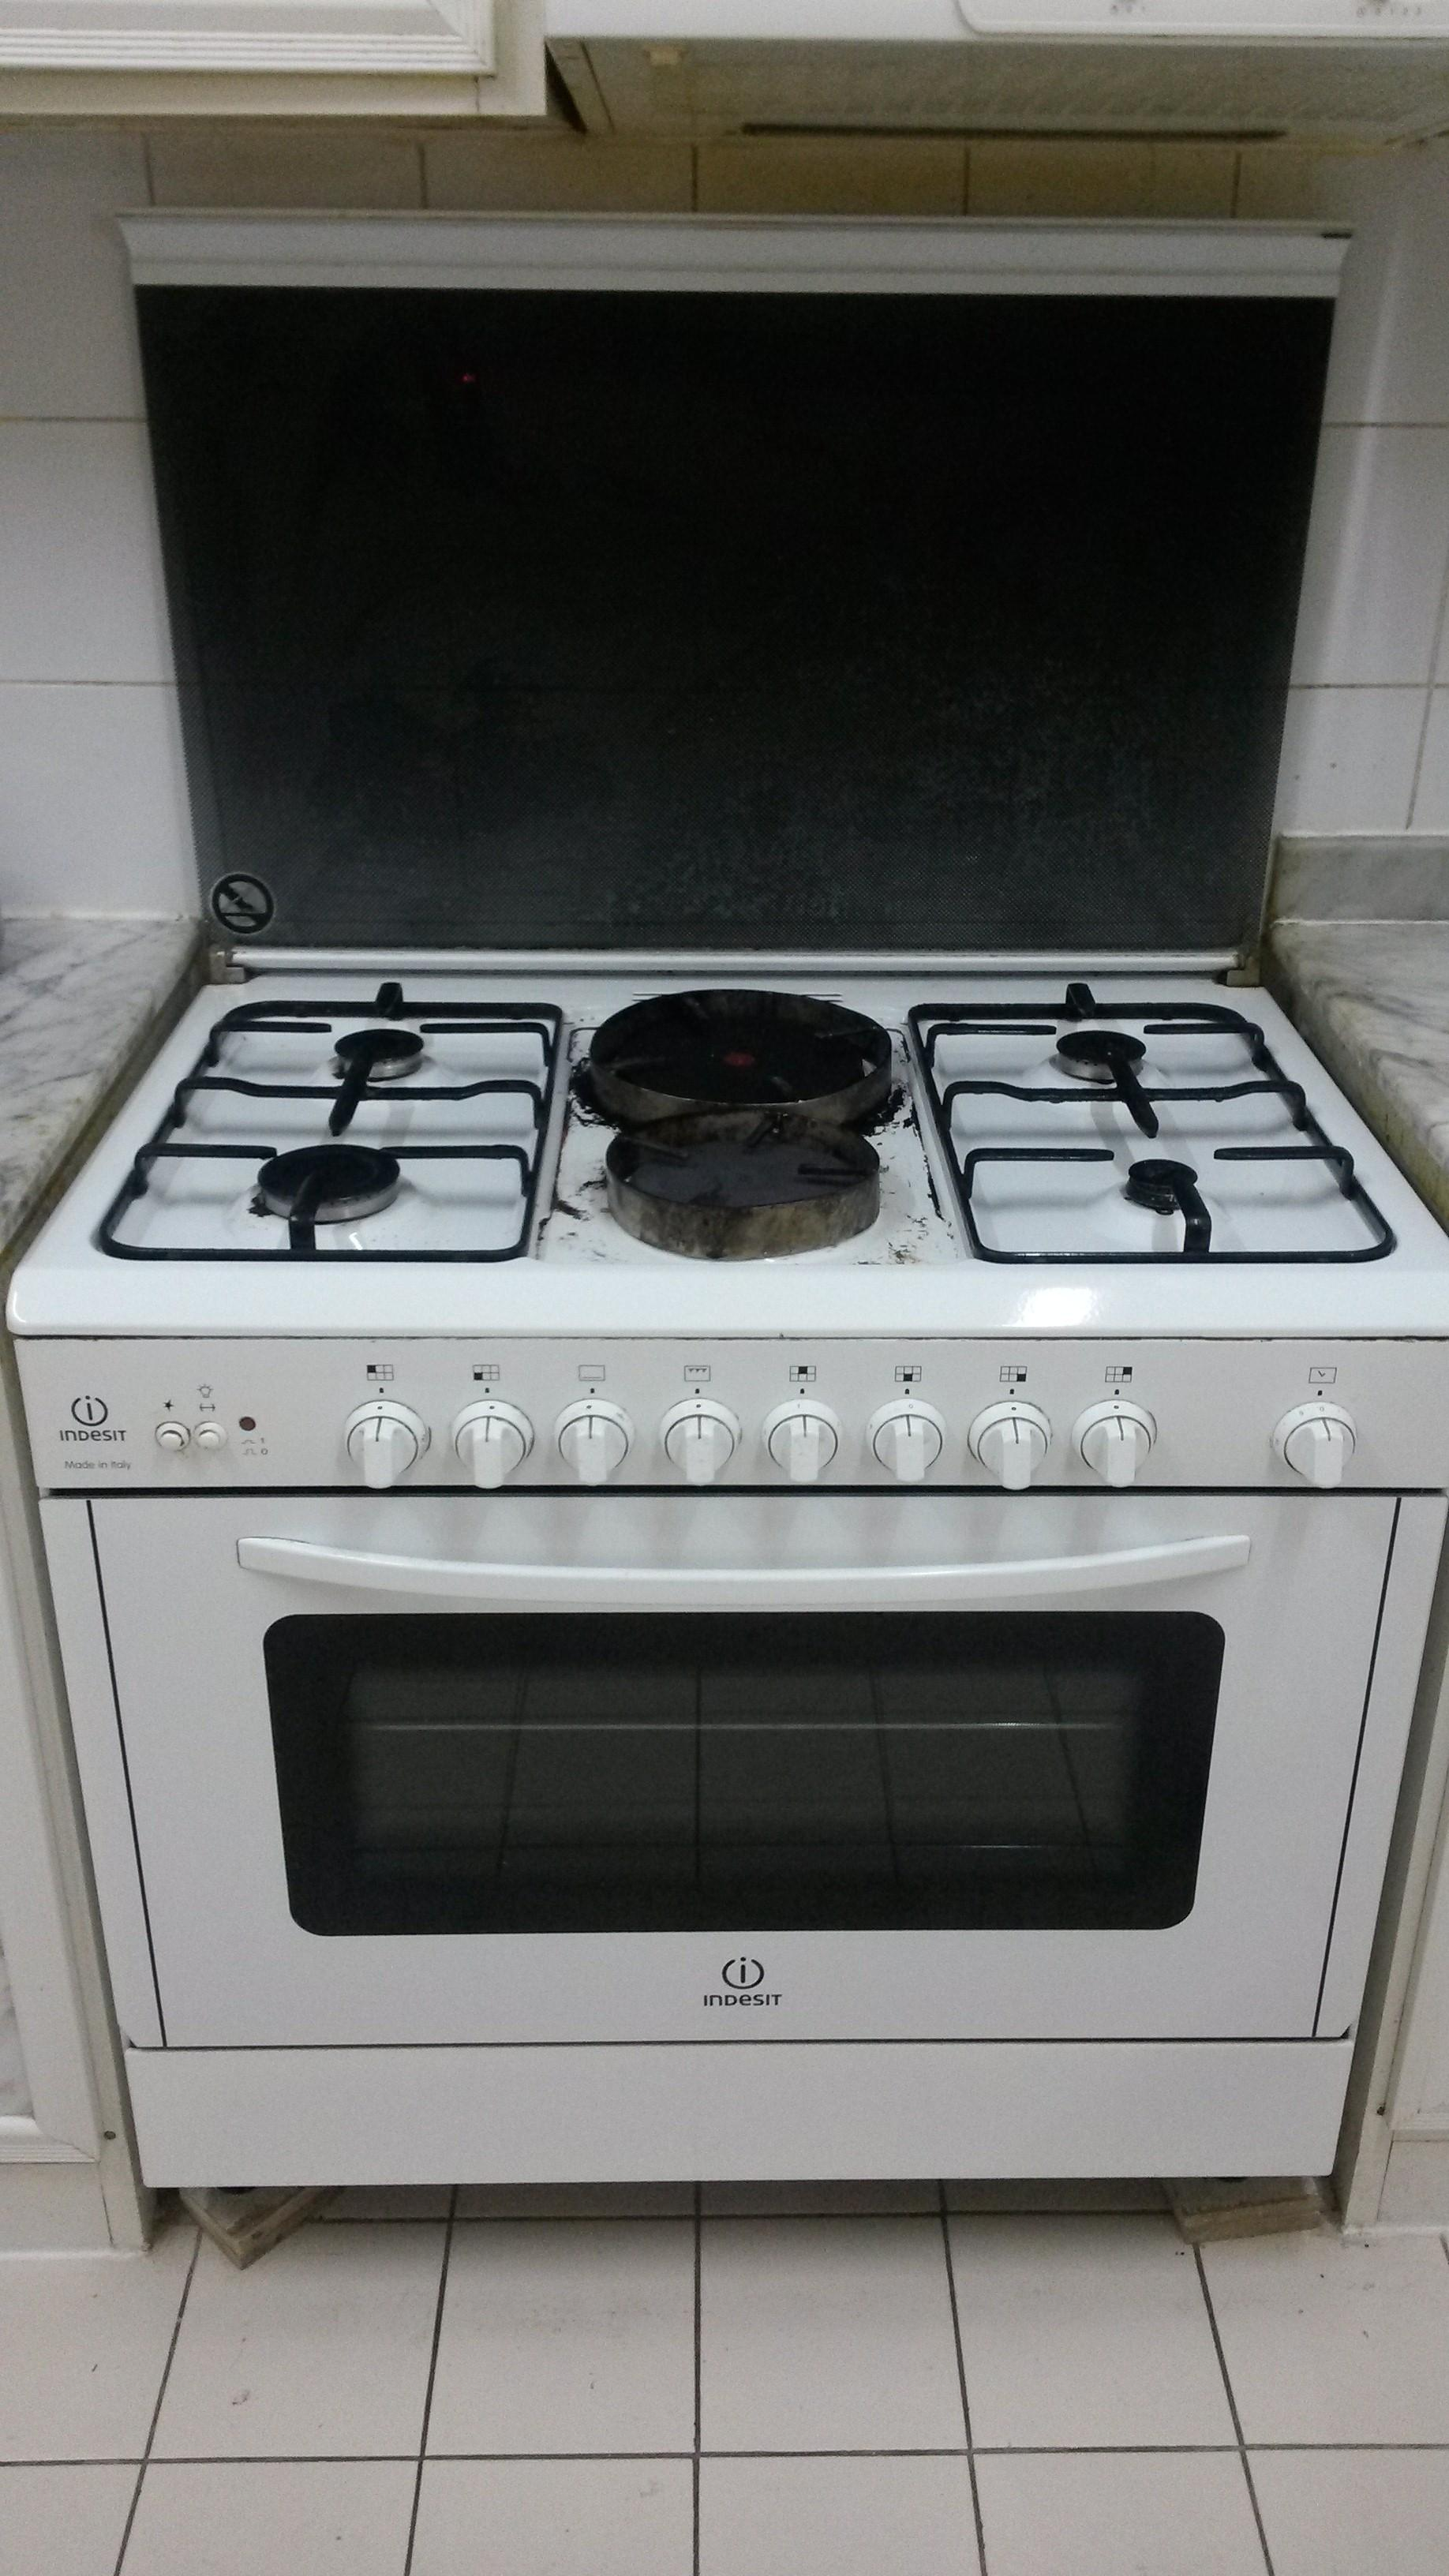 Cooking range: 4 numbers gas burner +2 numbers hot